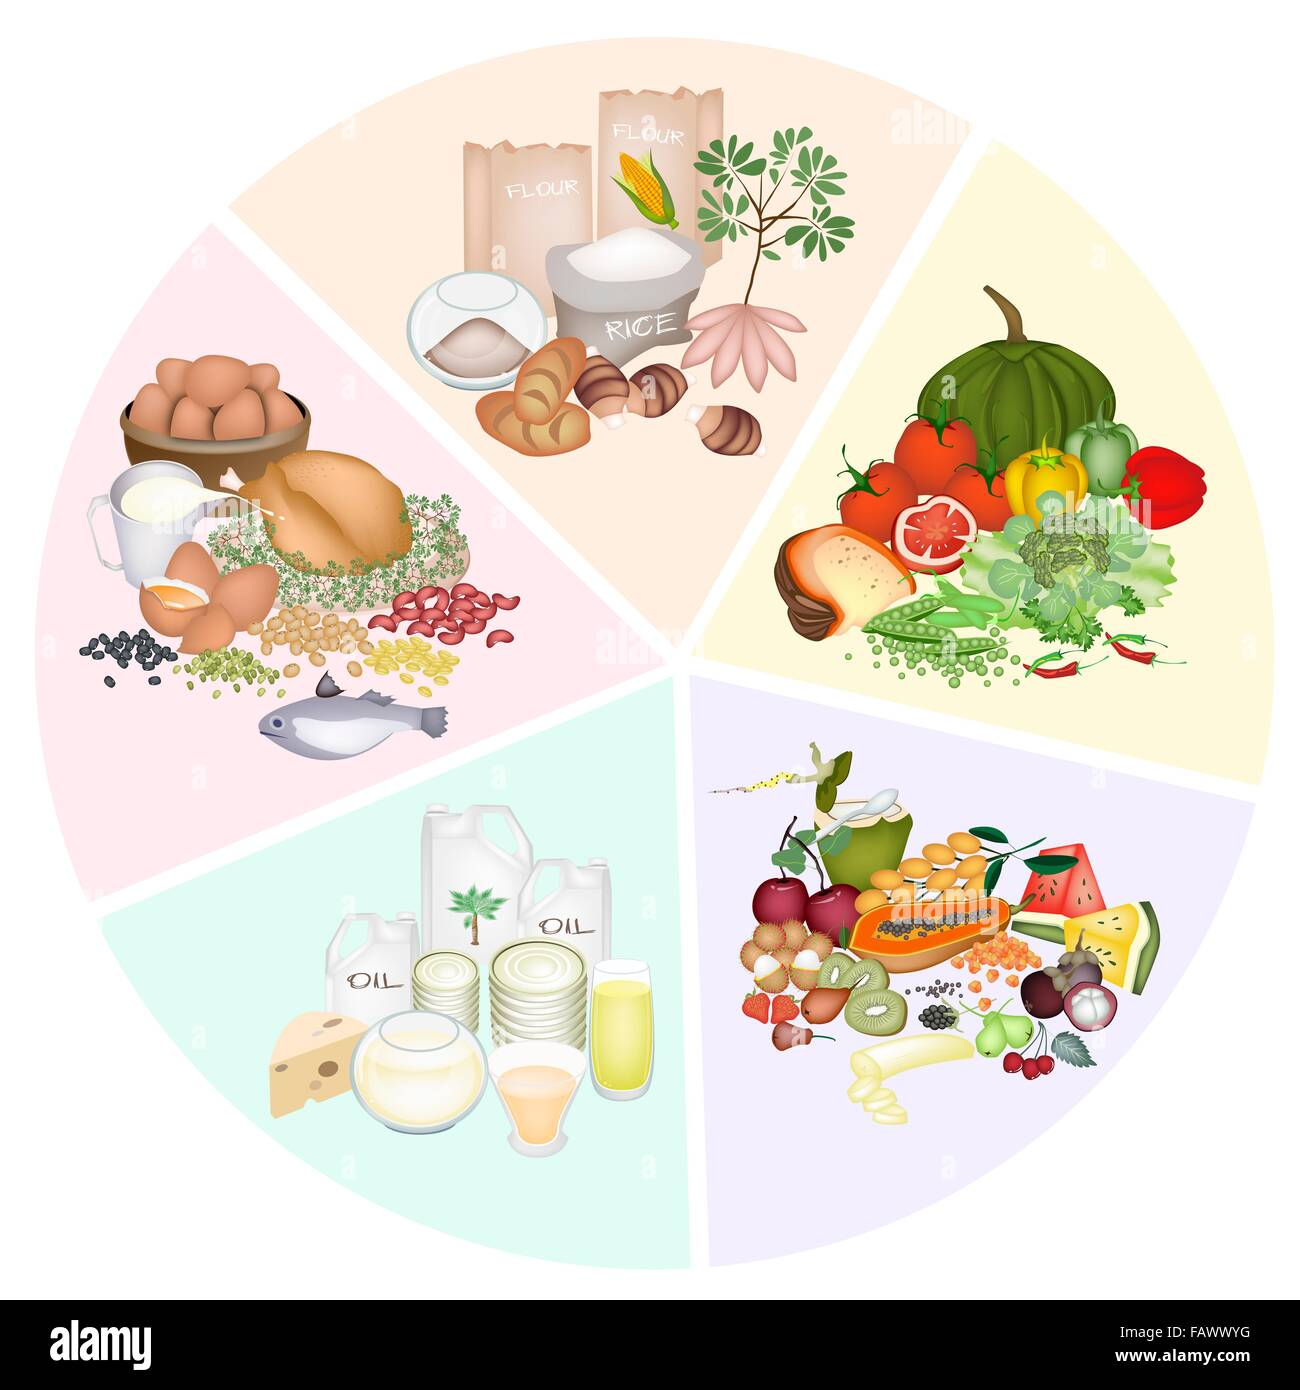 A pie chart of food groups for carbohydrate protein fat vitamin a pie chart of food groups for carbohydrate protein fat vitamin and mineral to improve nutrient intake and health benefits nvjuhfo Choice Image